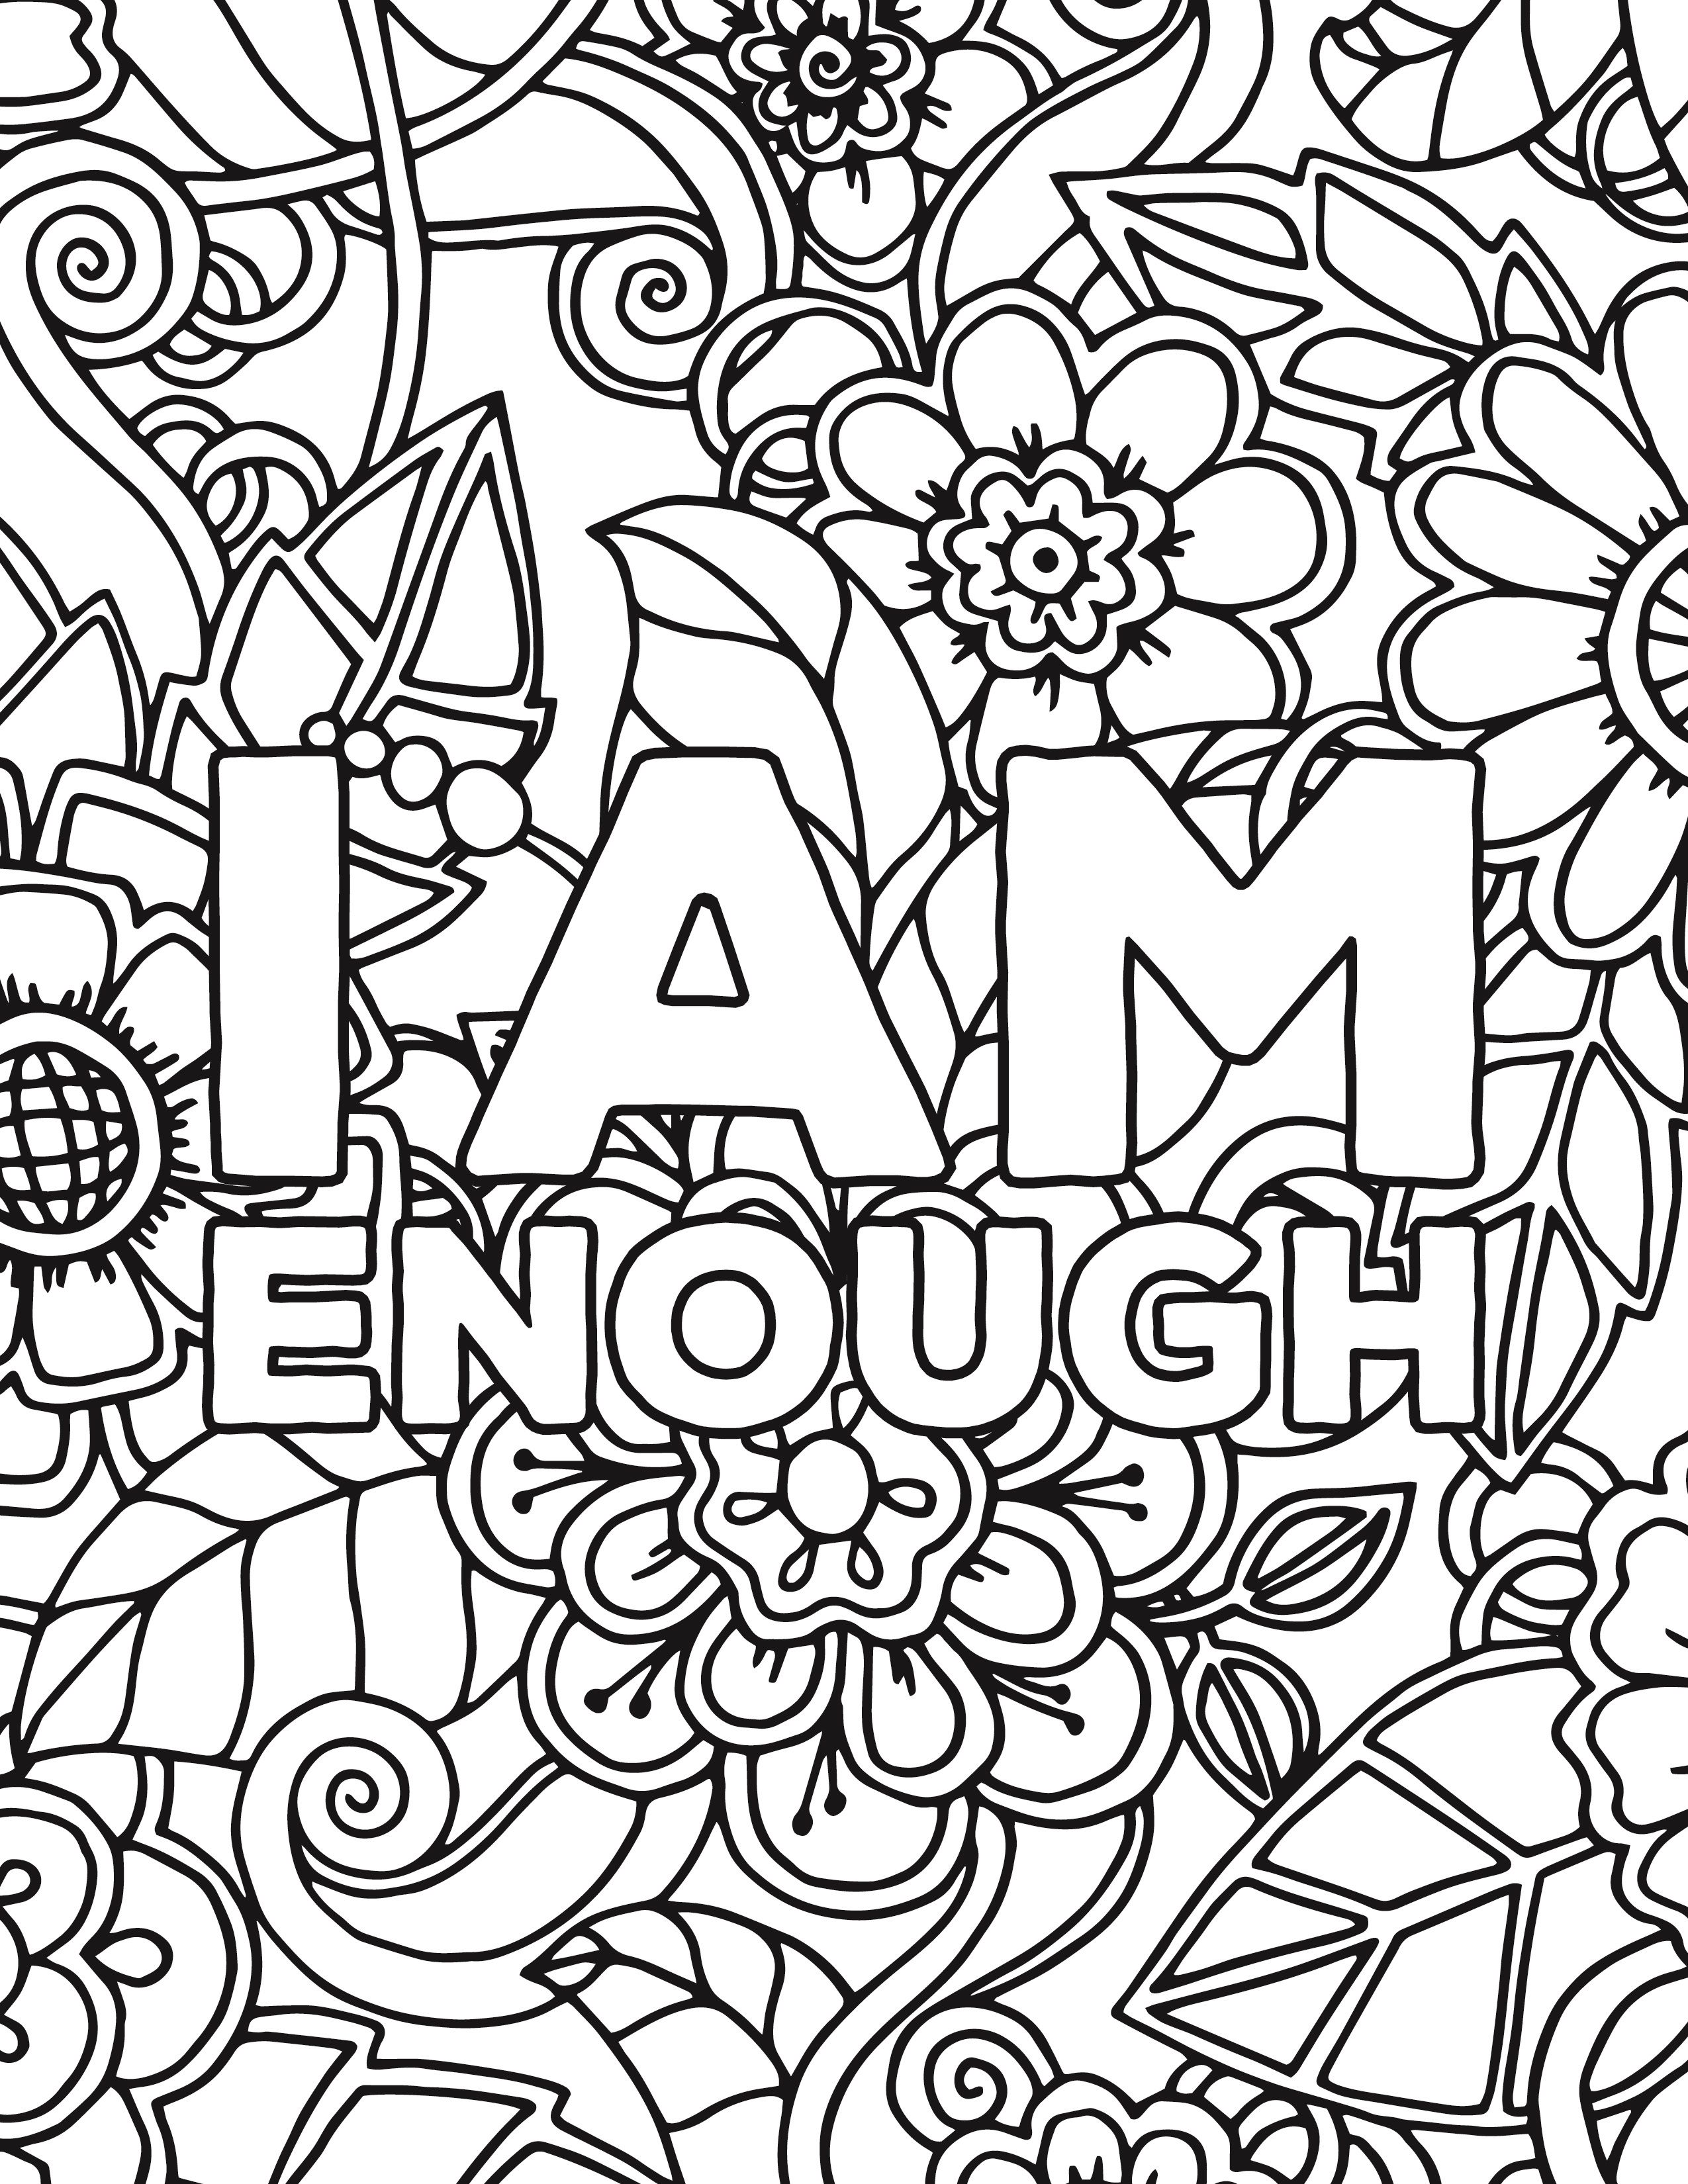 Floral + Affirmations Coloring Pages  totallifecare  Love